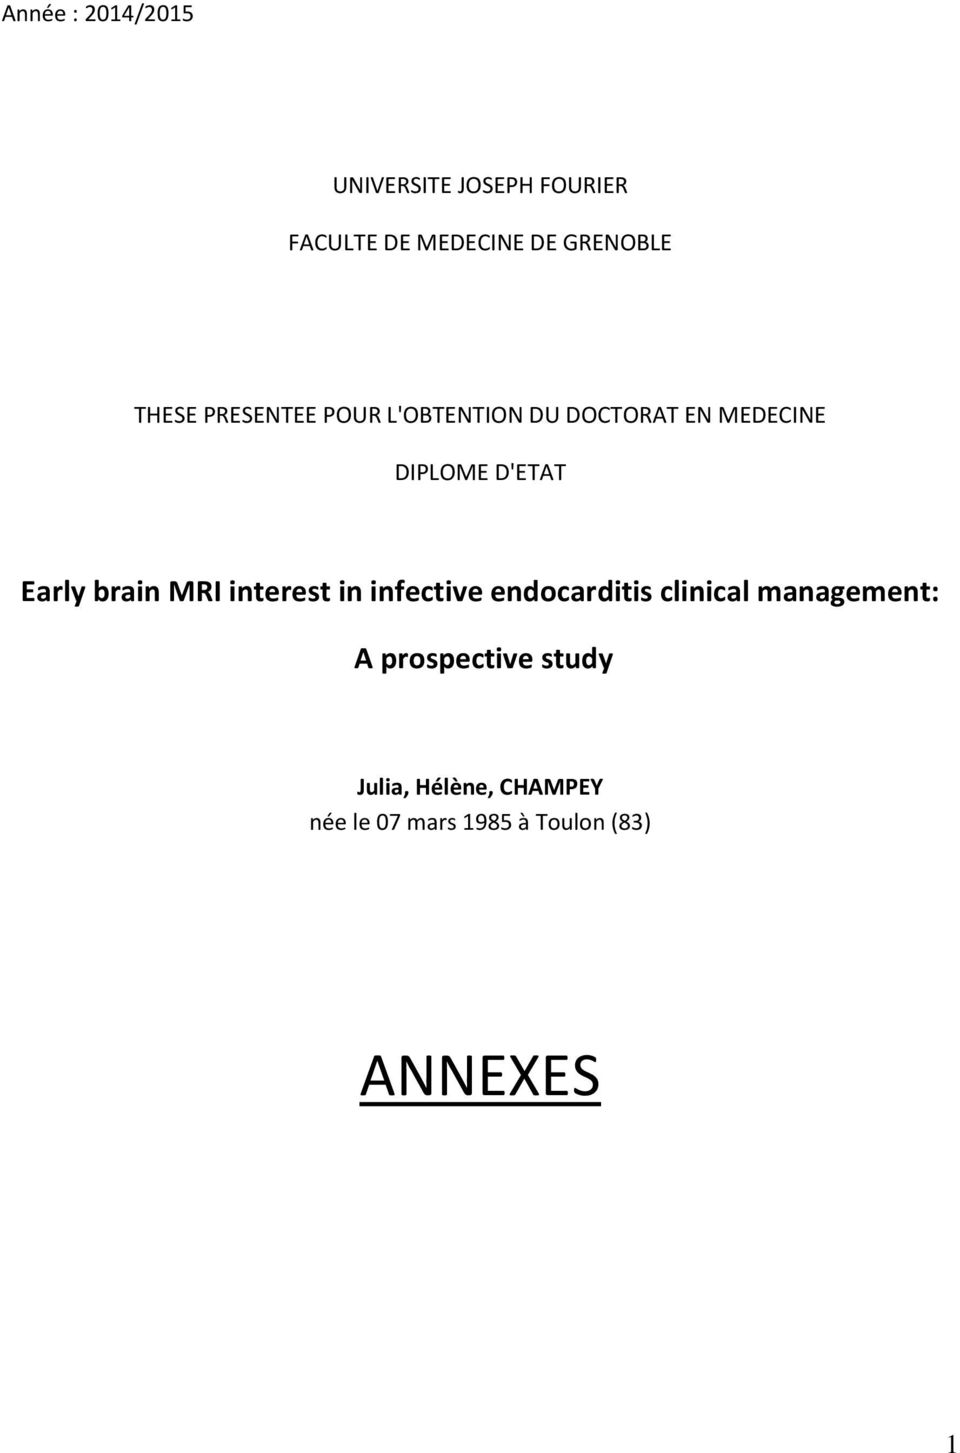 Early brain MRI interest in infective endocarditis clinical management: A